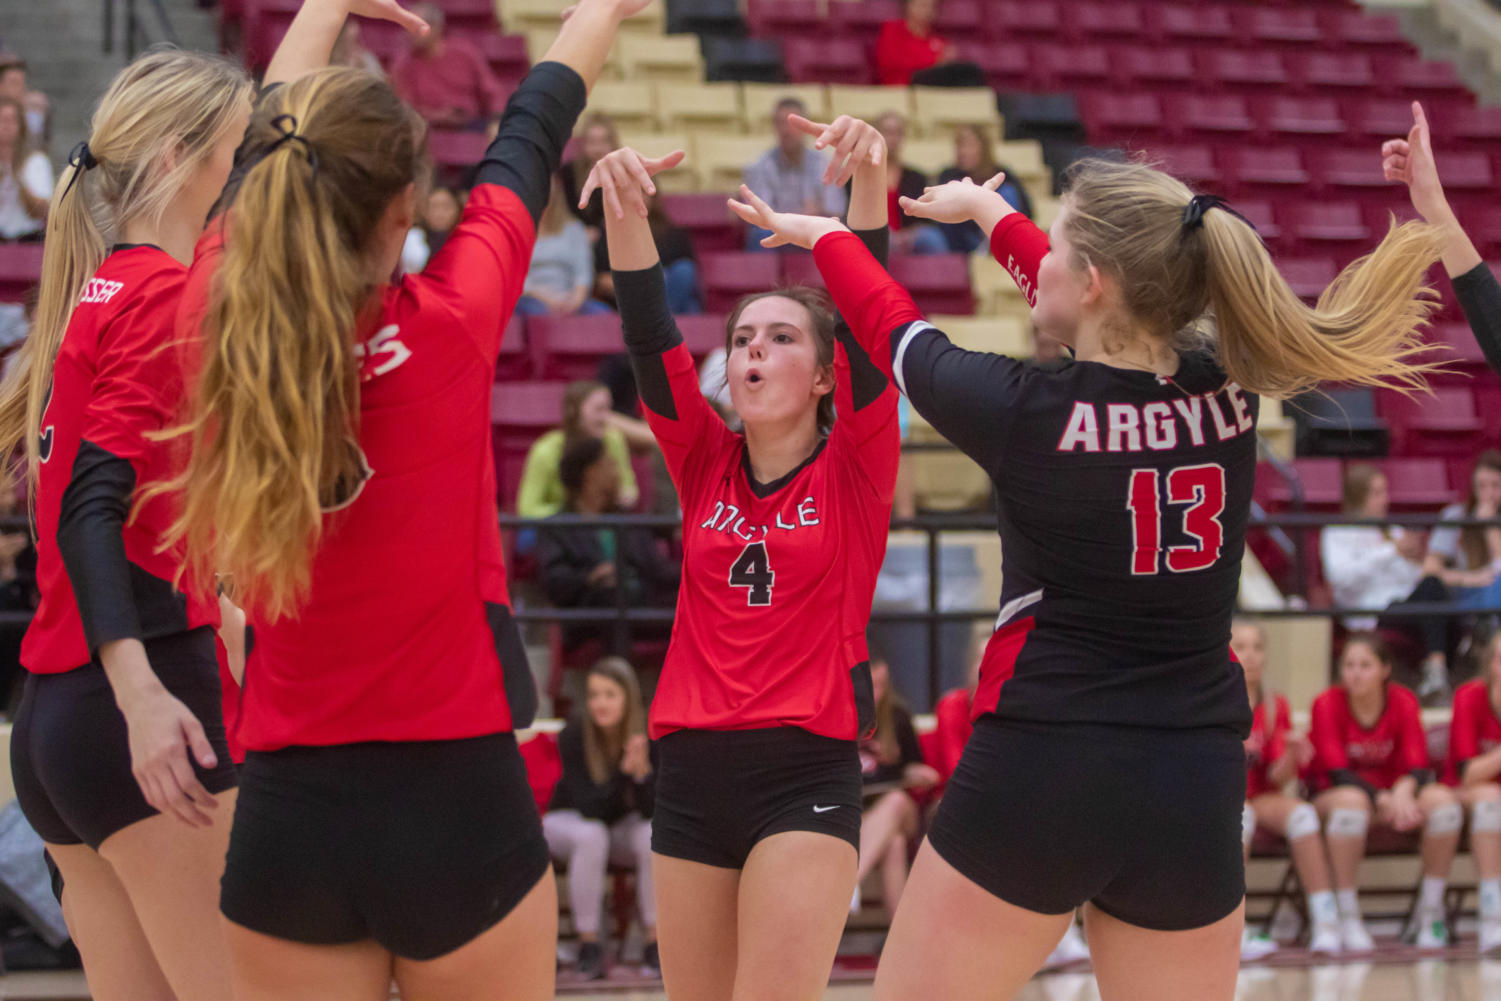 The Lady Eagles defeat Glen Rose High School at Saginaw High School in the first round of the playoffs on Nov. 4, 2019 (Alex Daggett | The Talon News).